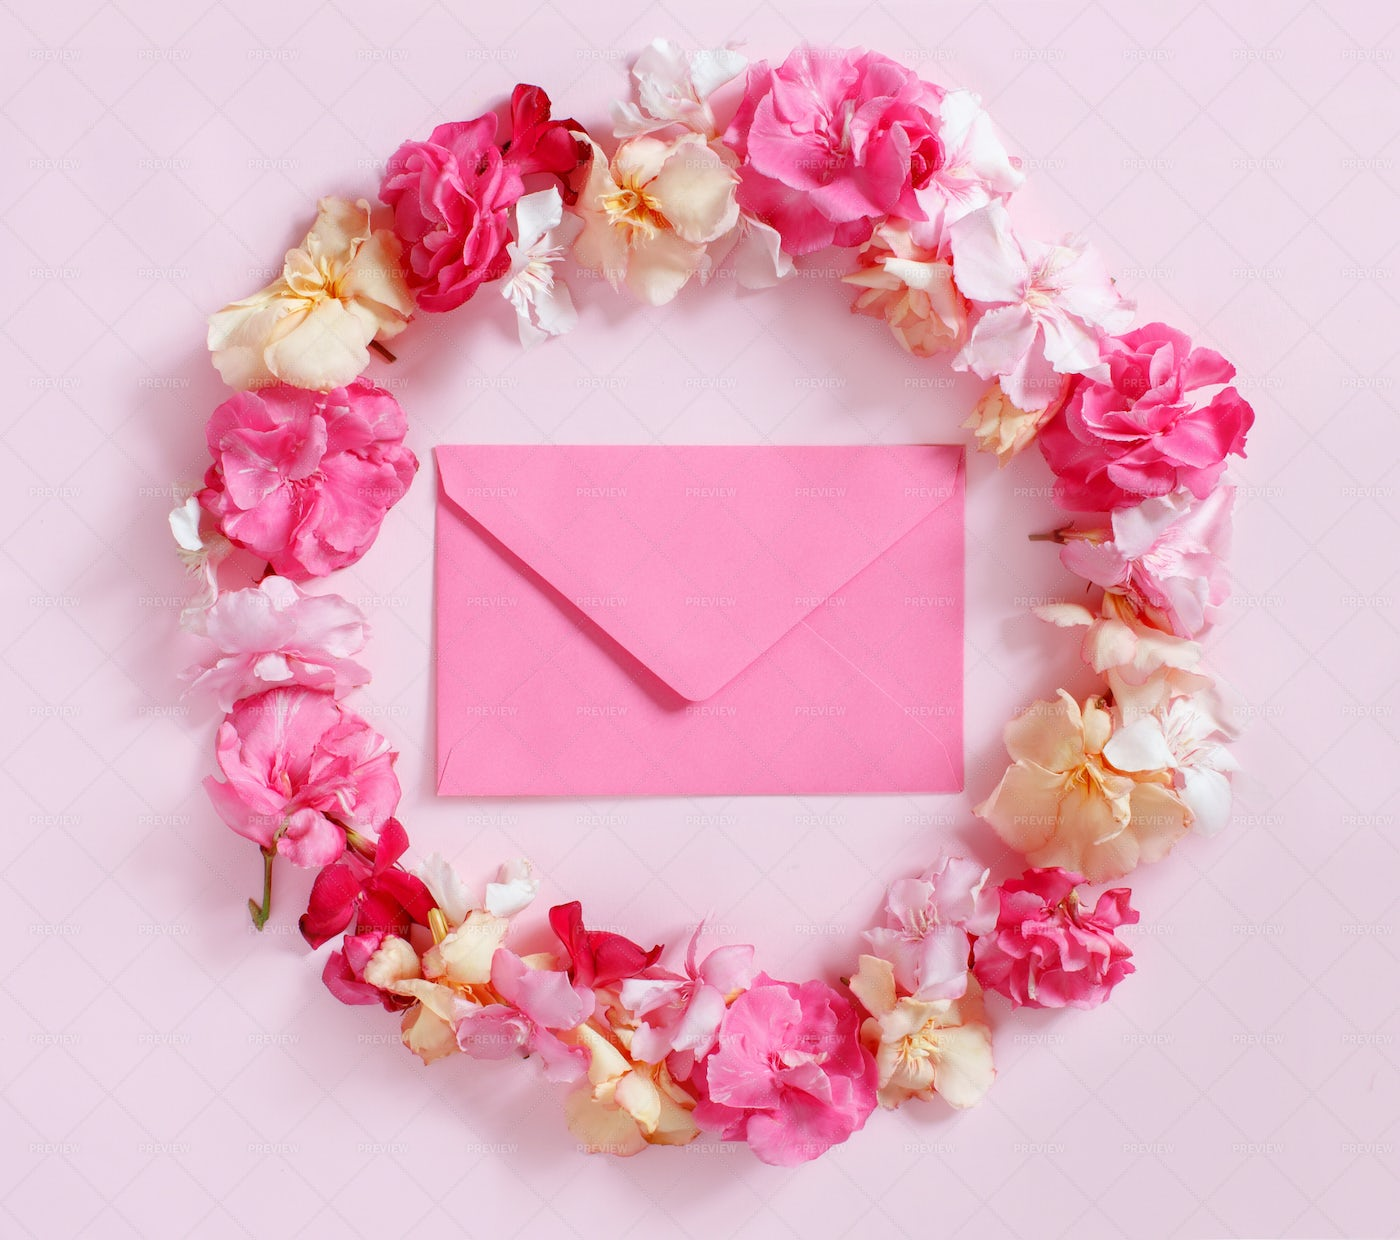 Pink Envelope And Flowers: Stock Photos